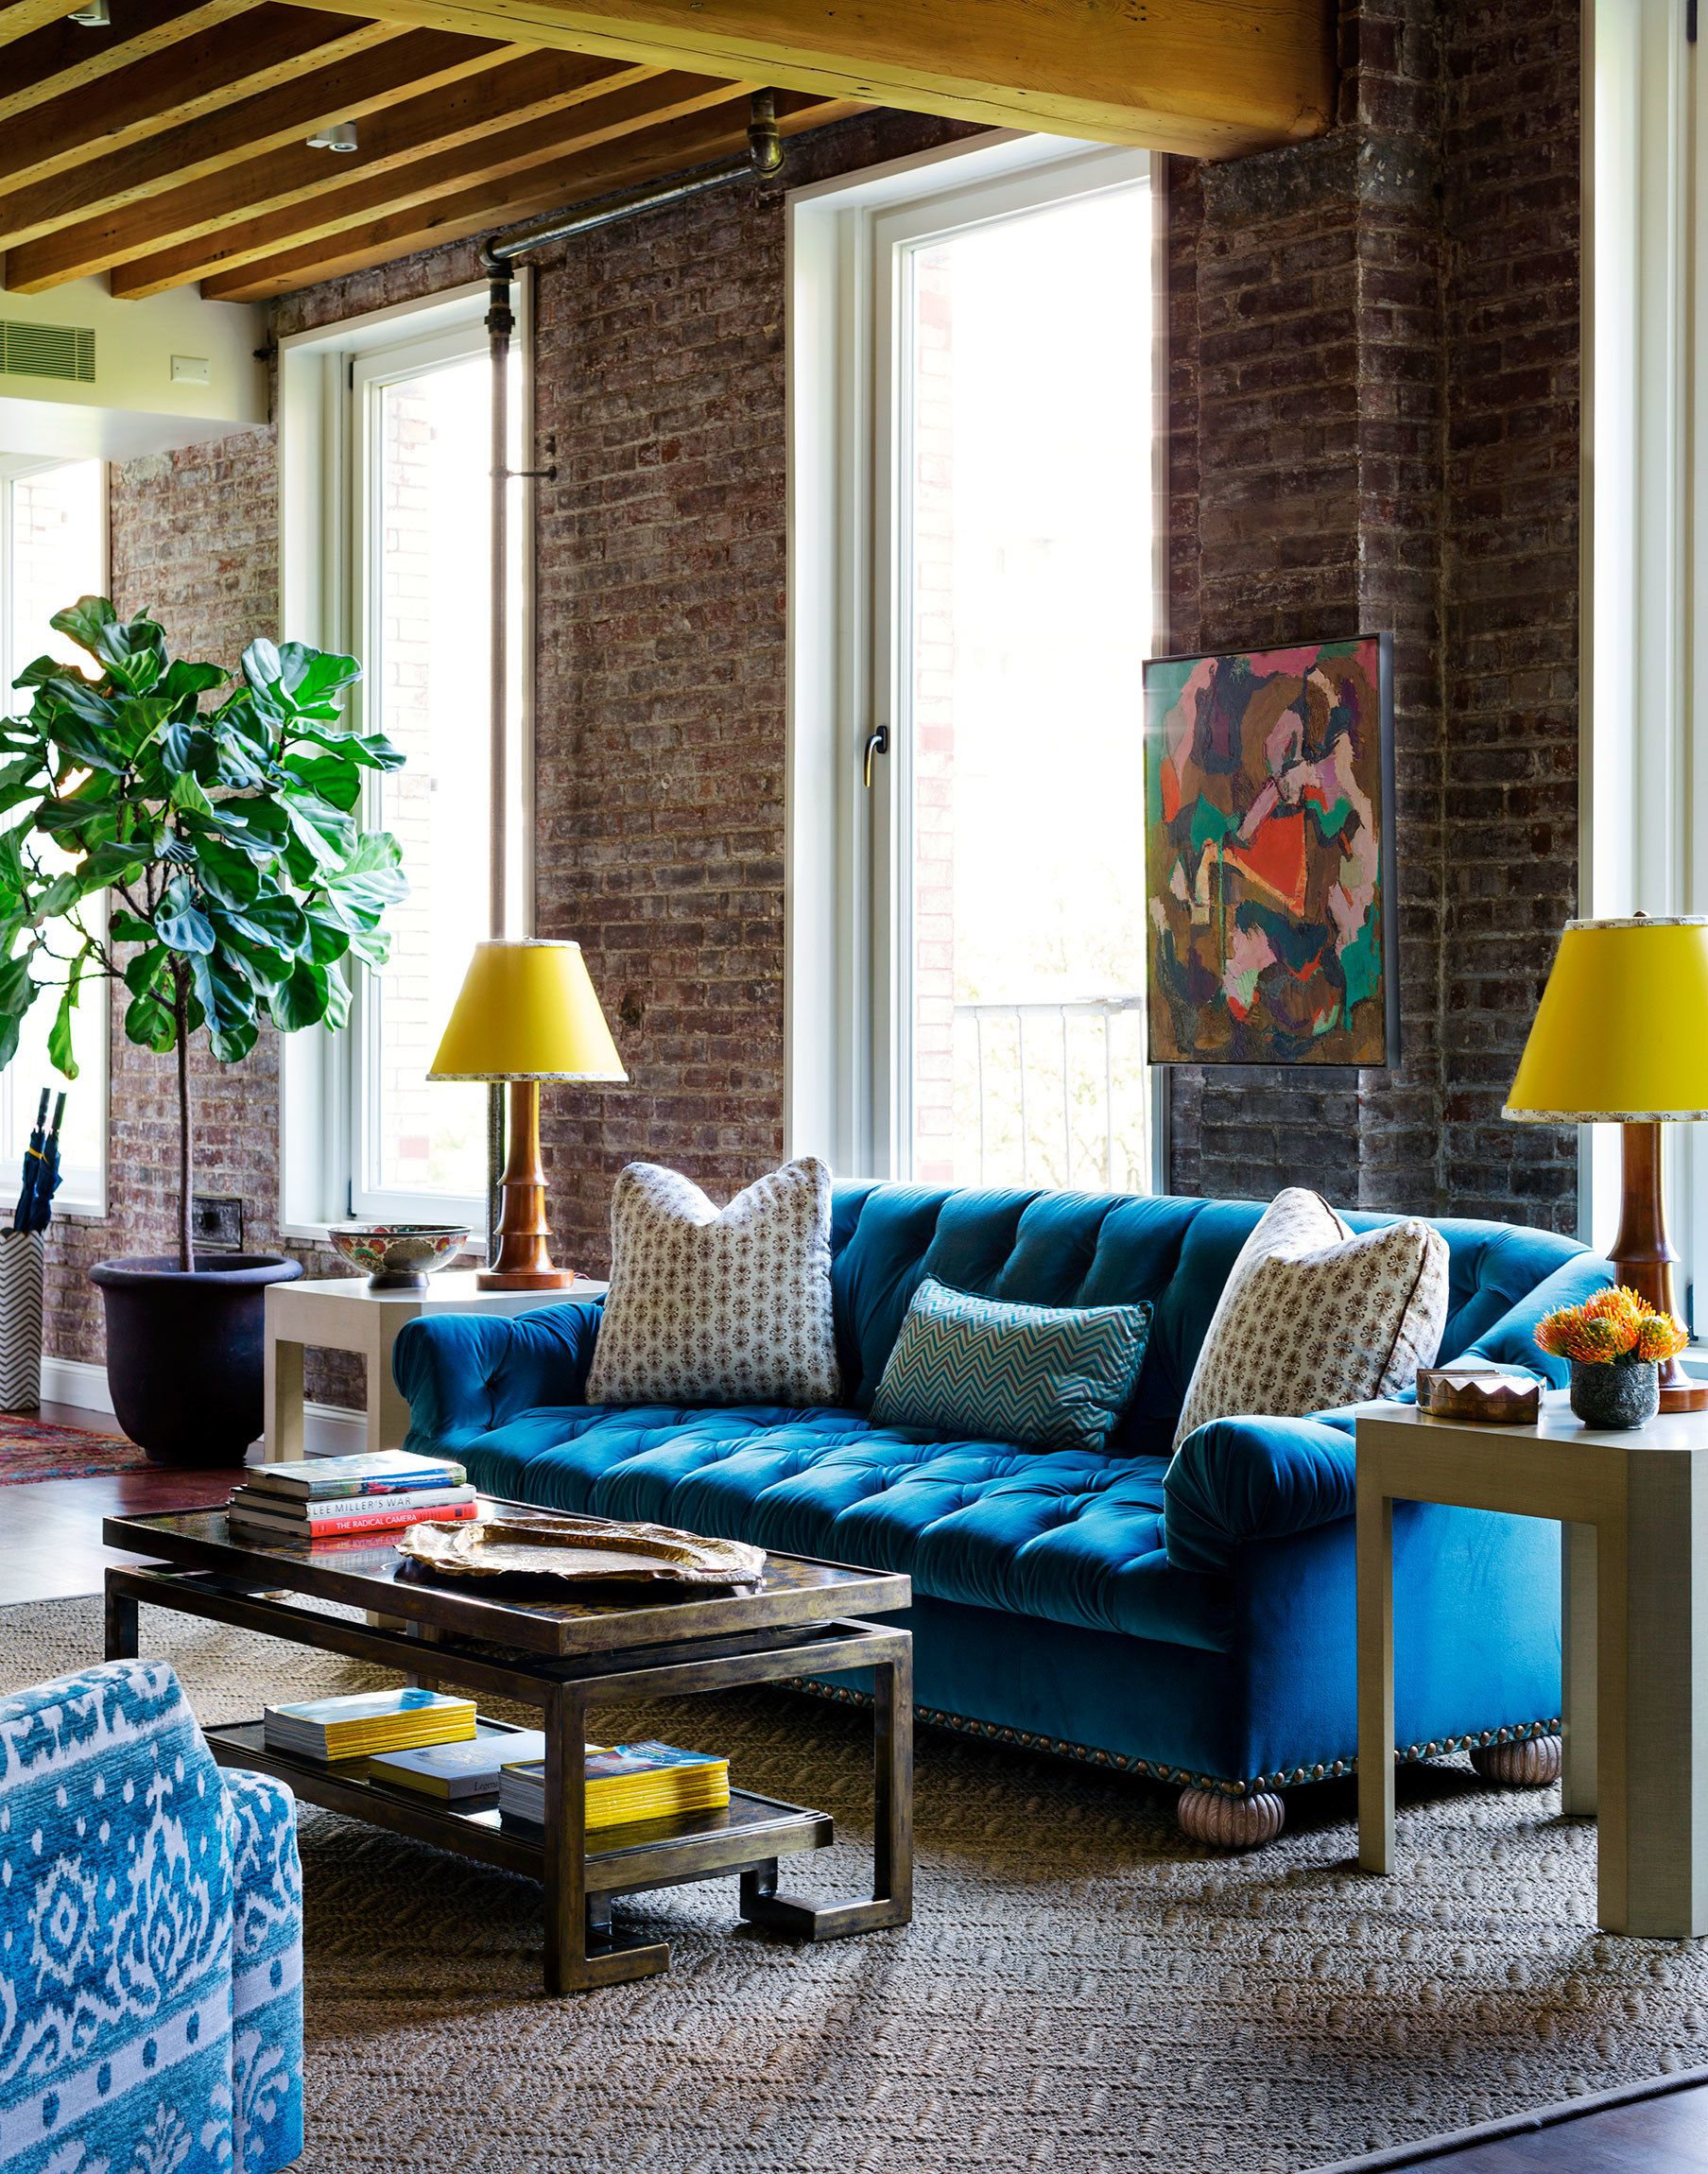 7 Expert Ideas to Add Color to Your Home